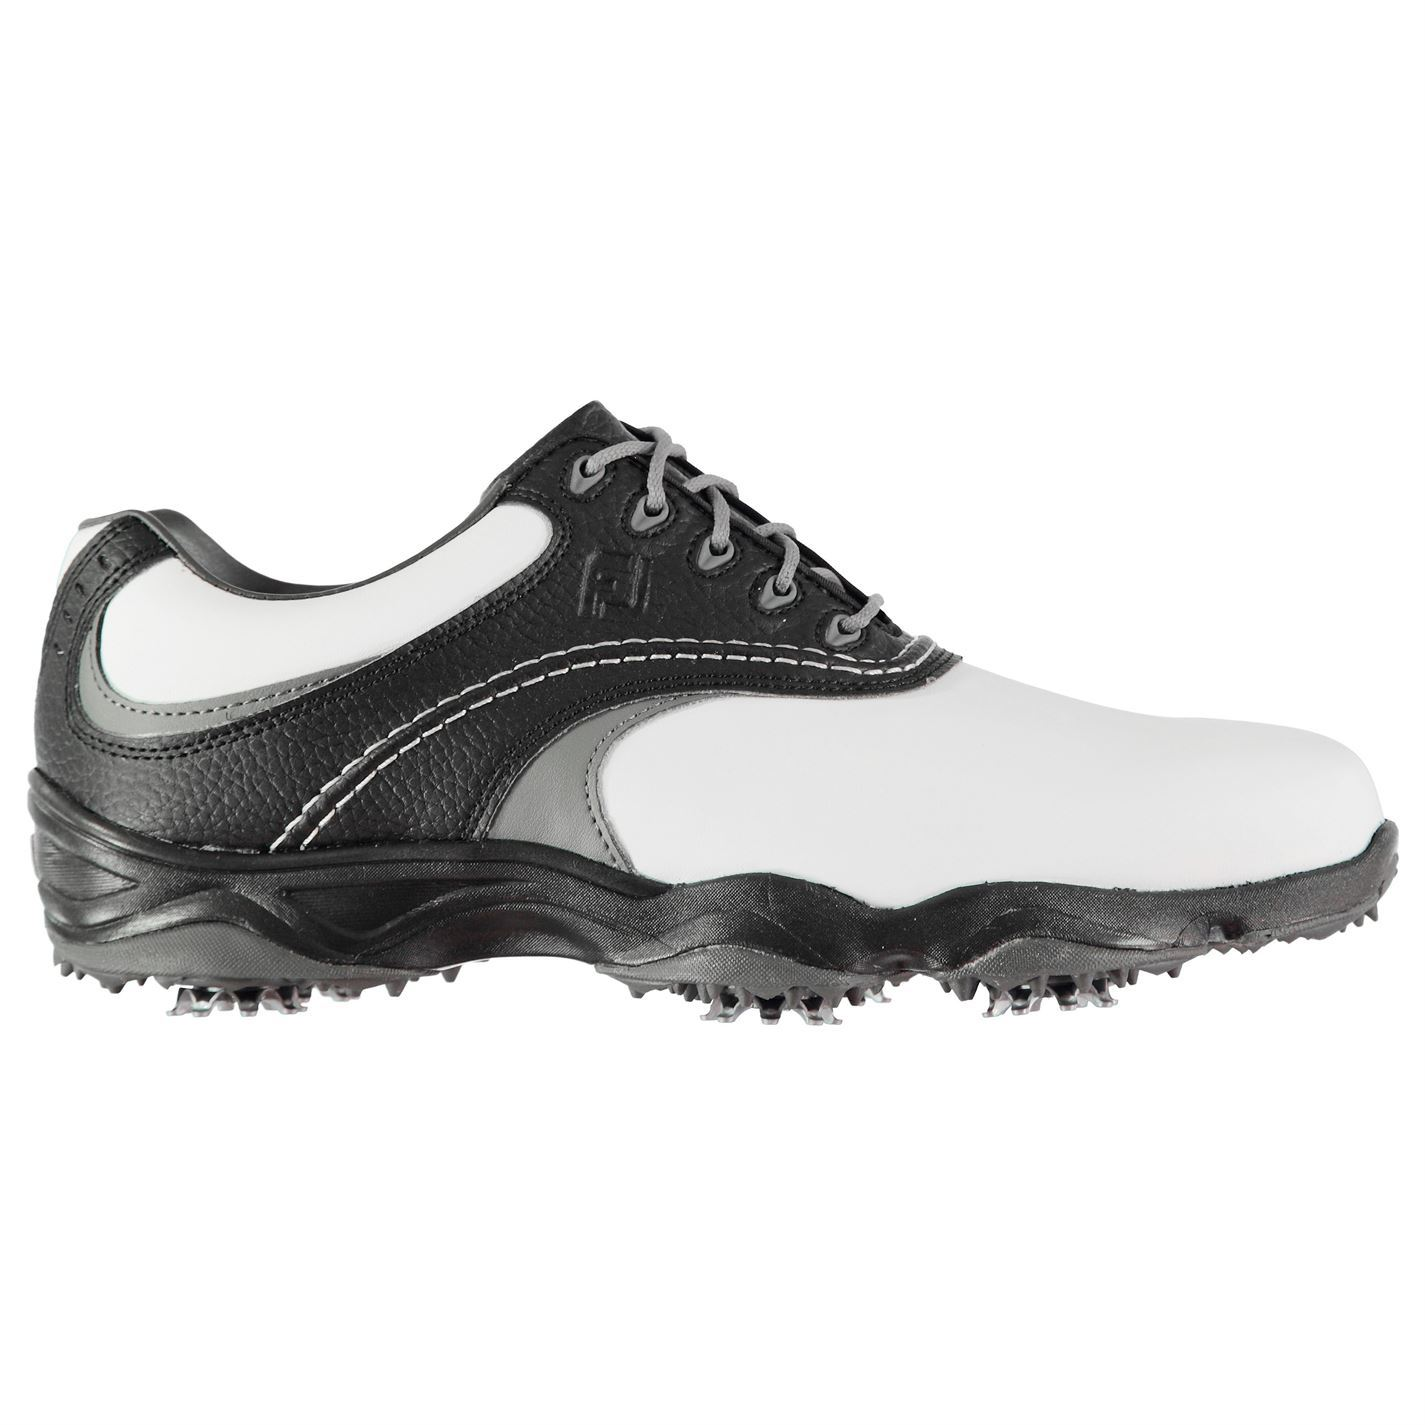 Footjoy-Originals-Golf-Shoes-Mens-Spikes-Footwear thumbnail 17